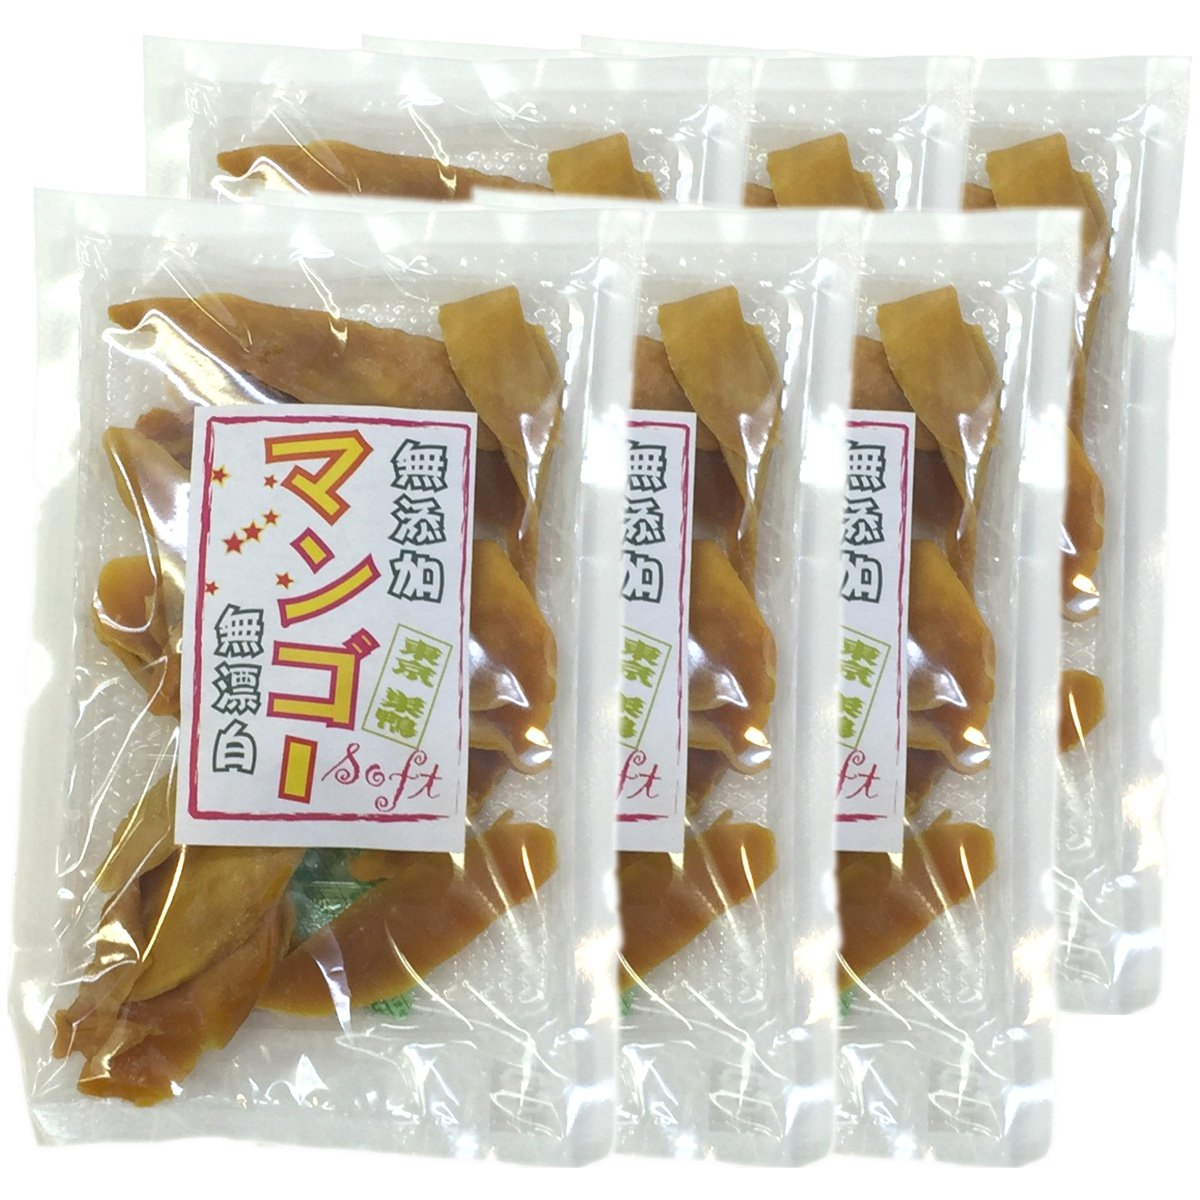 Japanese Tea Shop Yamaneen Dry Mango Without Additives Bleach-Lessness 160G x 6packs